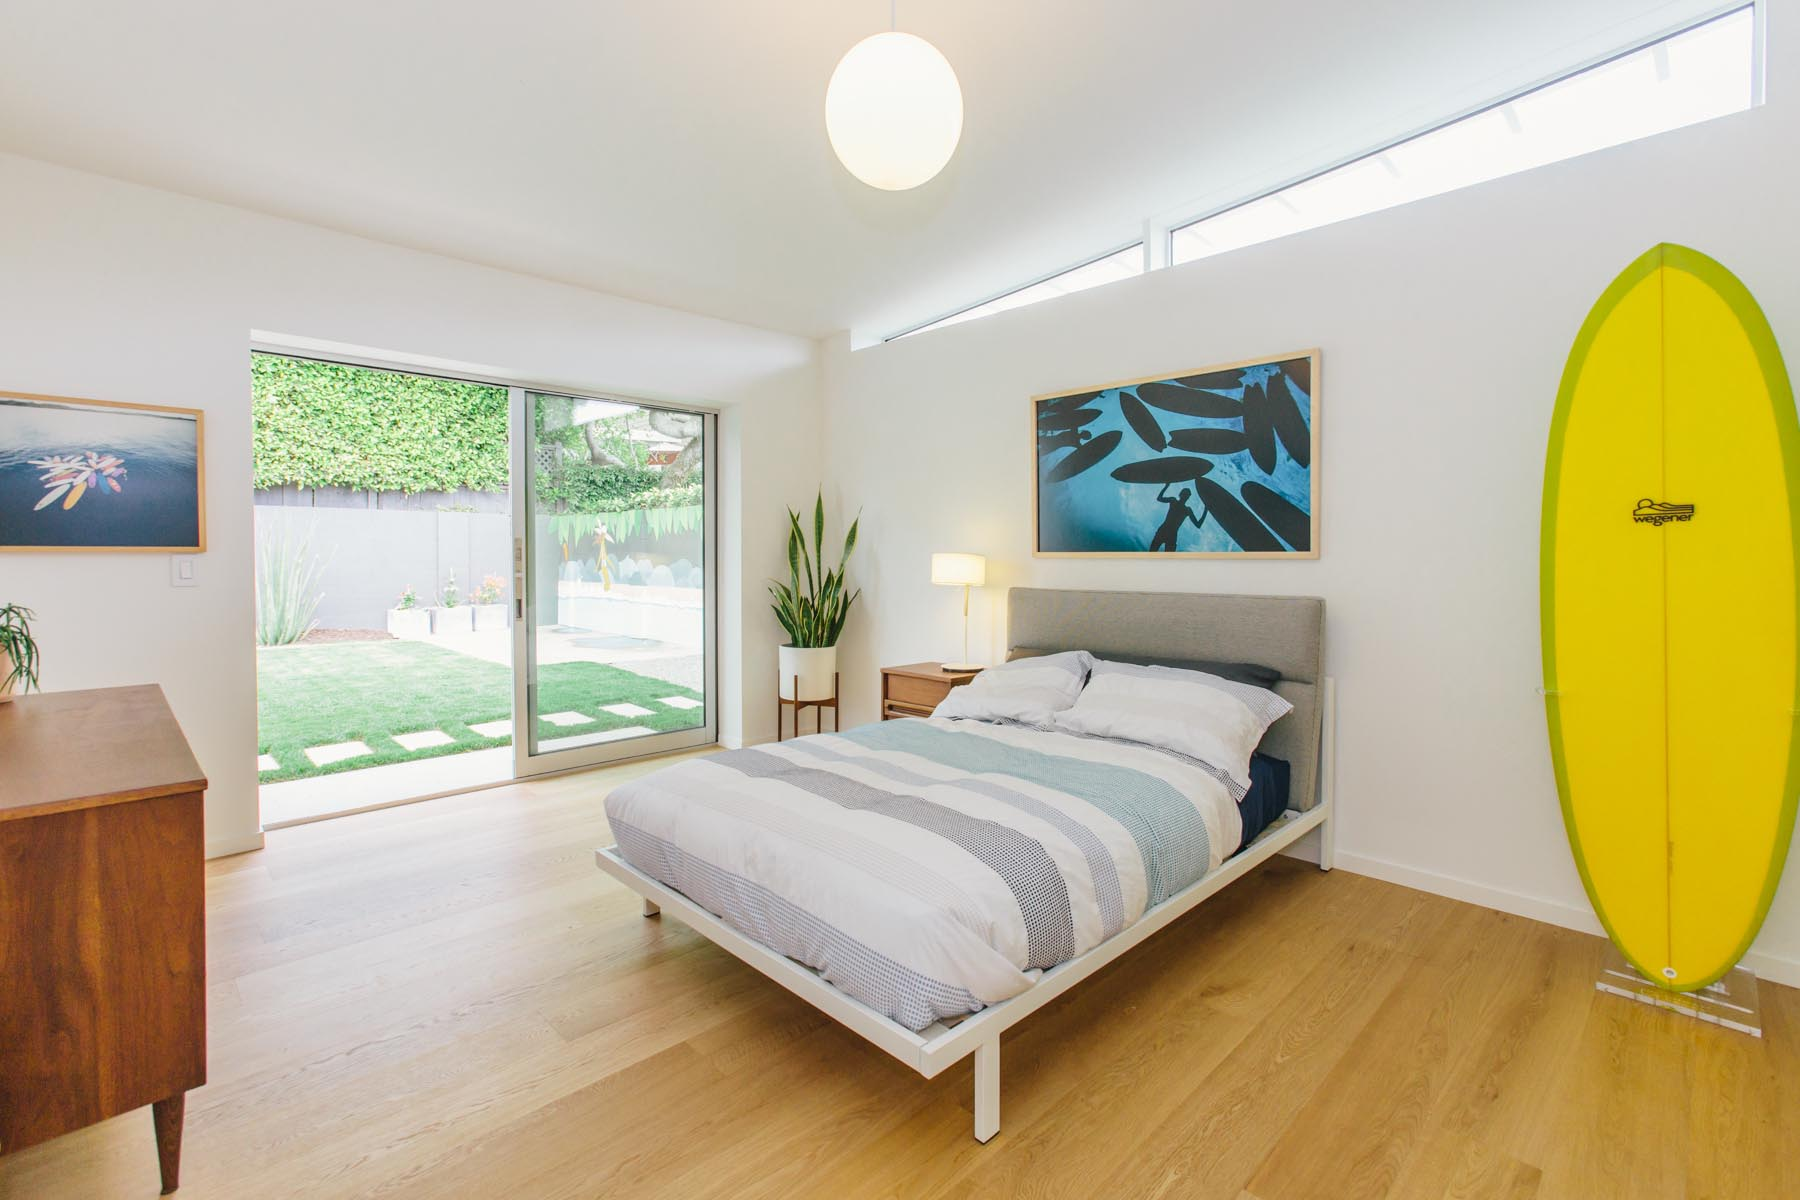 A mid-century modern inspired bedroom has clerestory windows and a sliding door that opens to the yard.